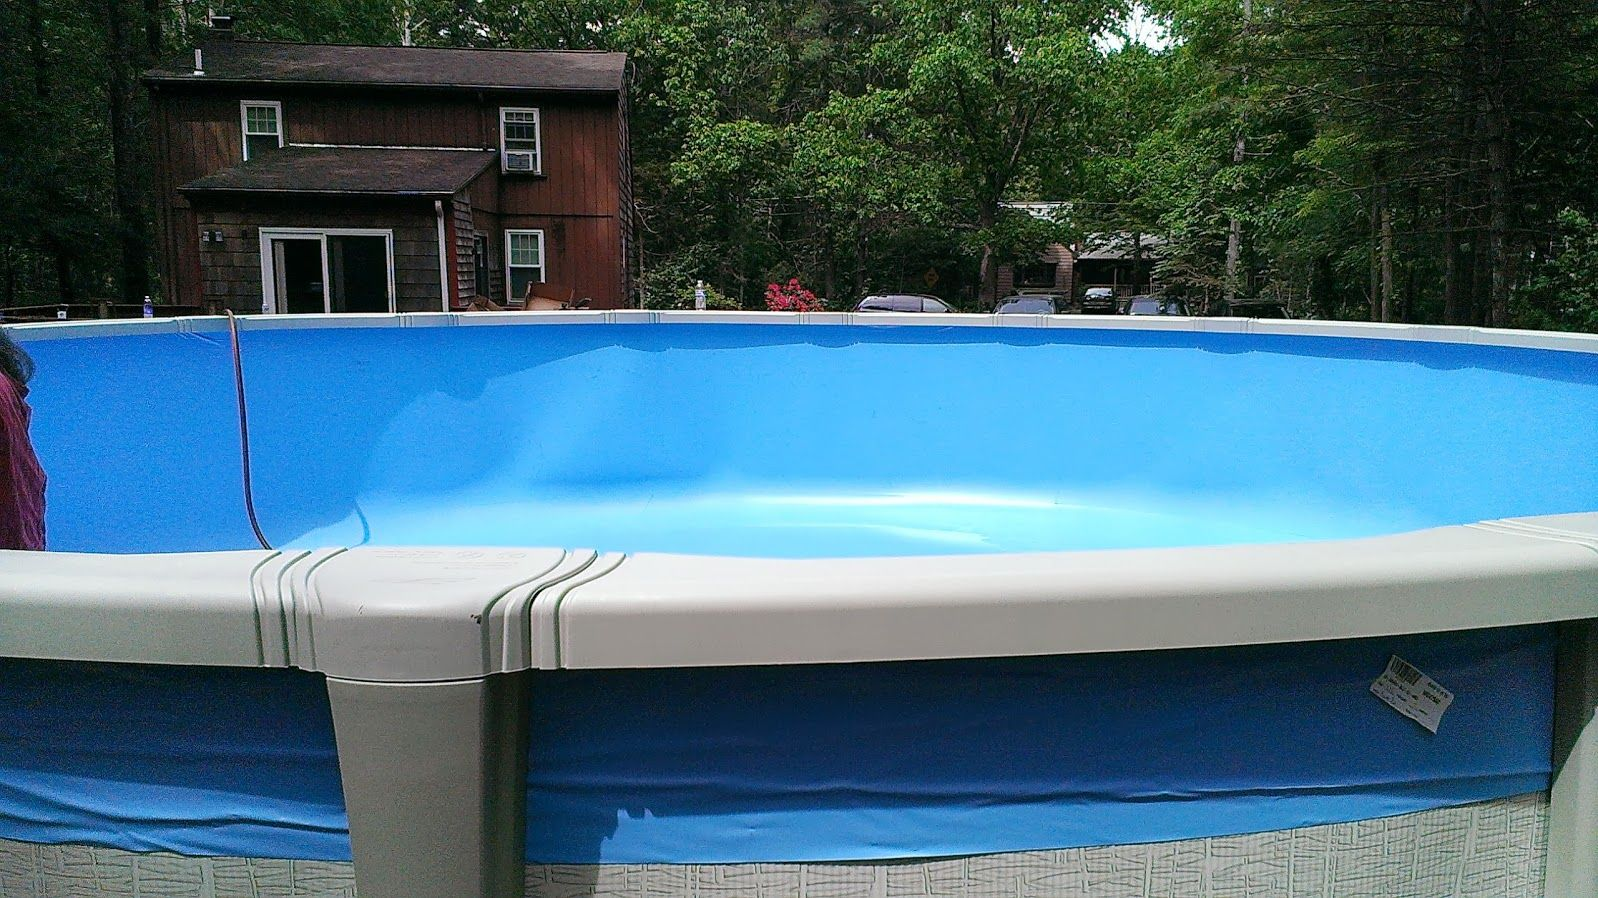 Above ground pools pool liners pool supplies above